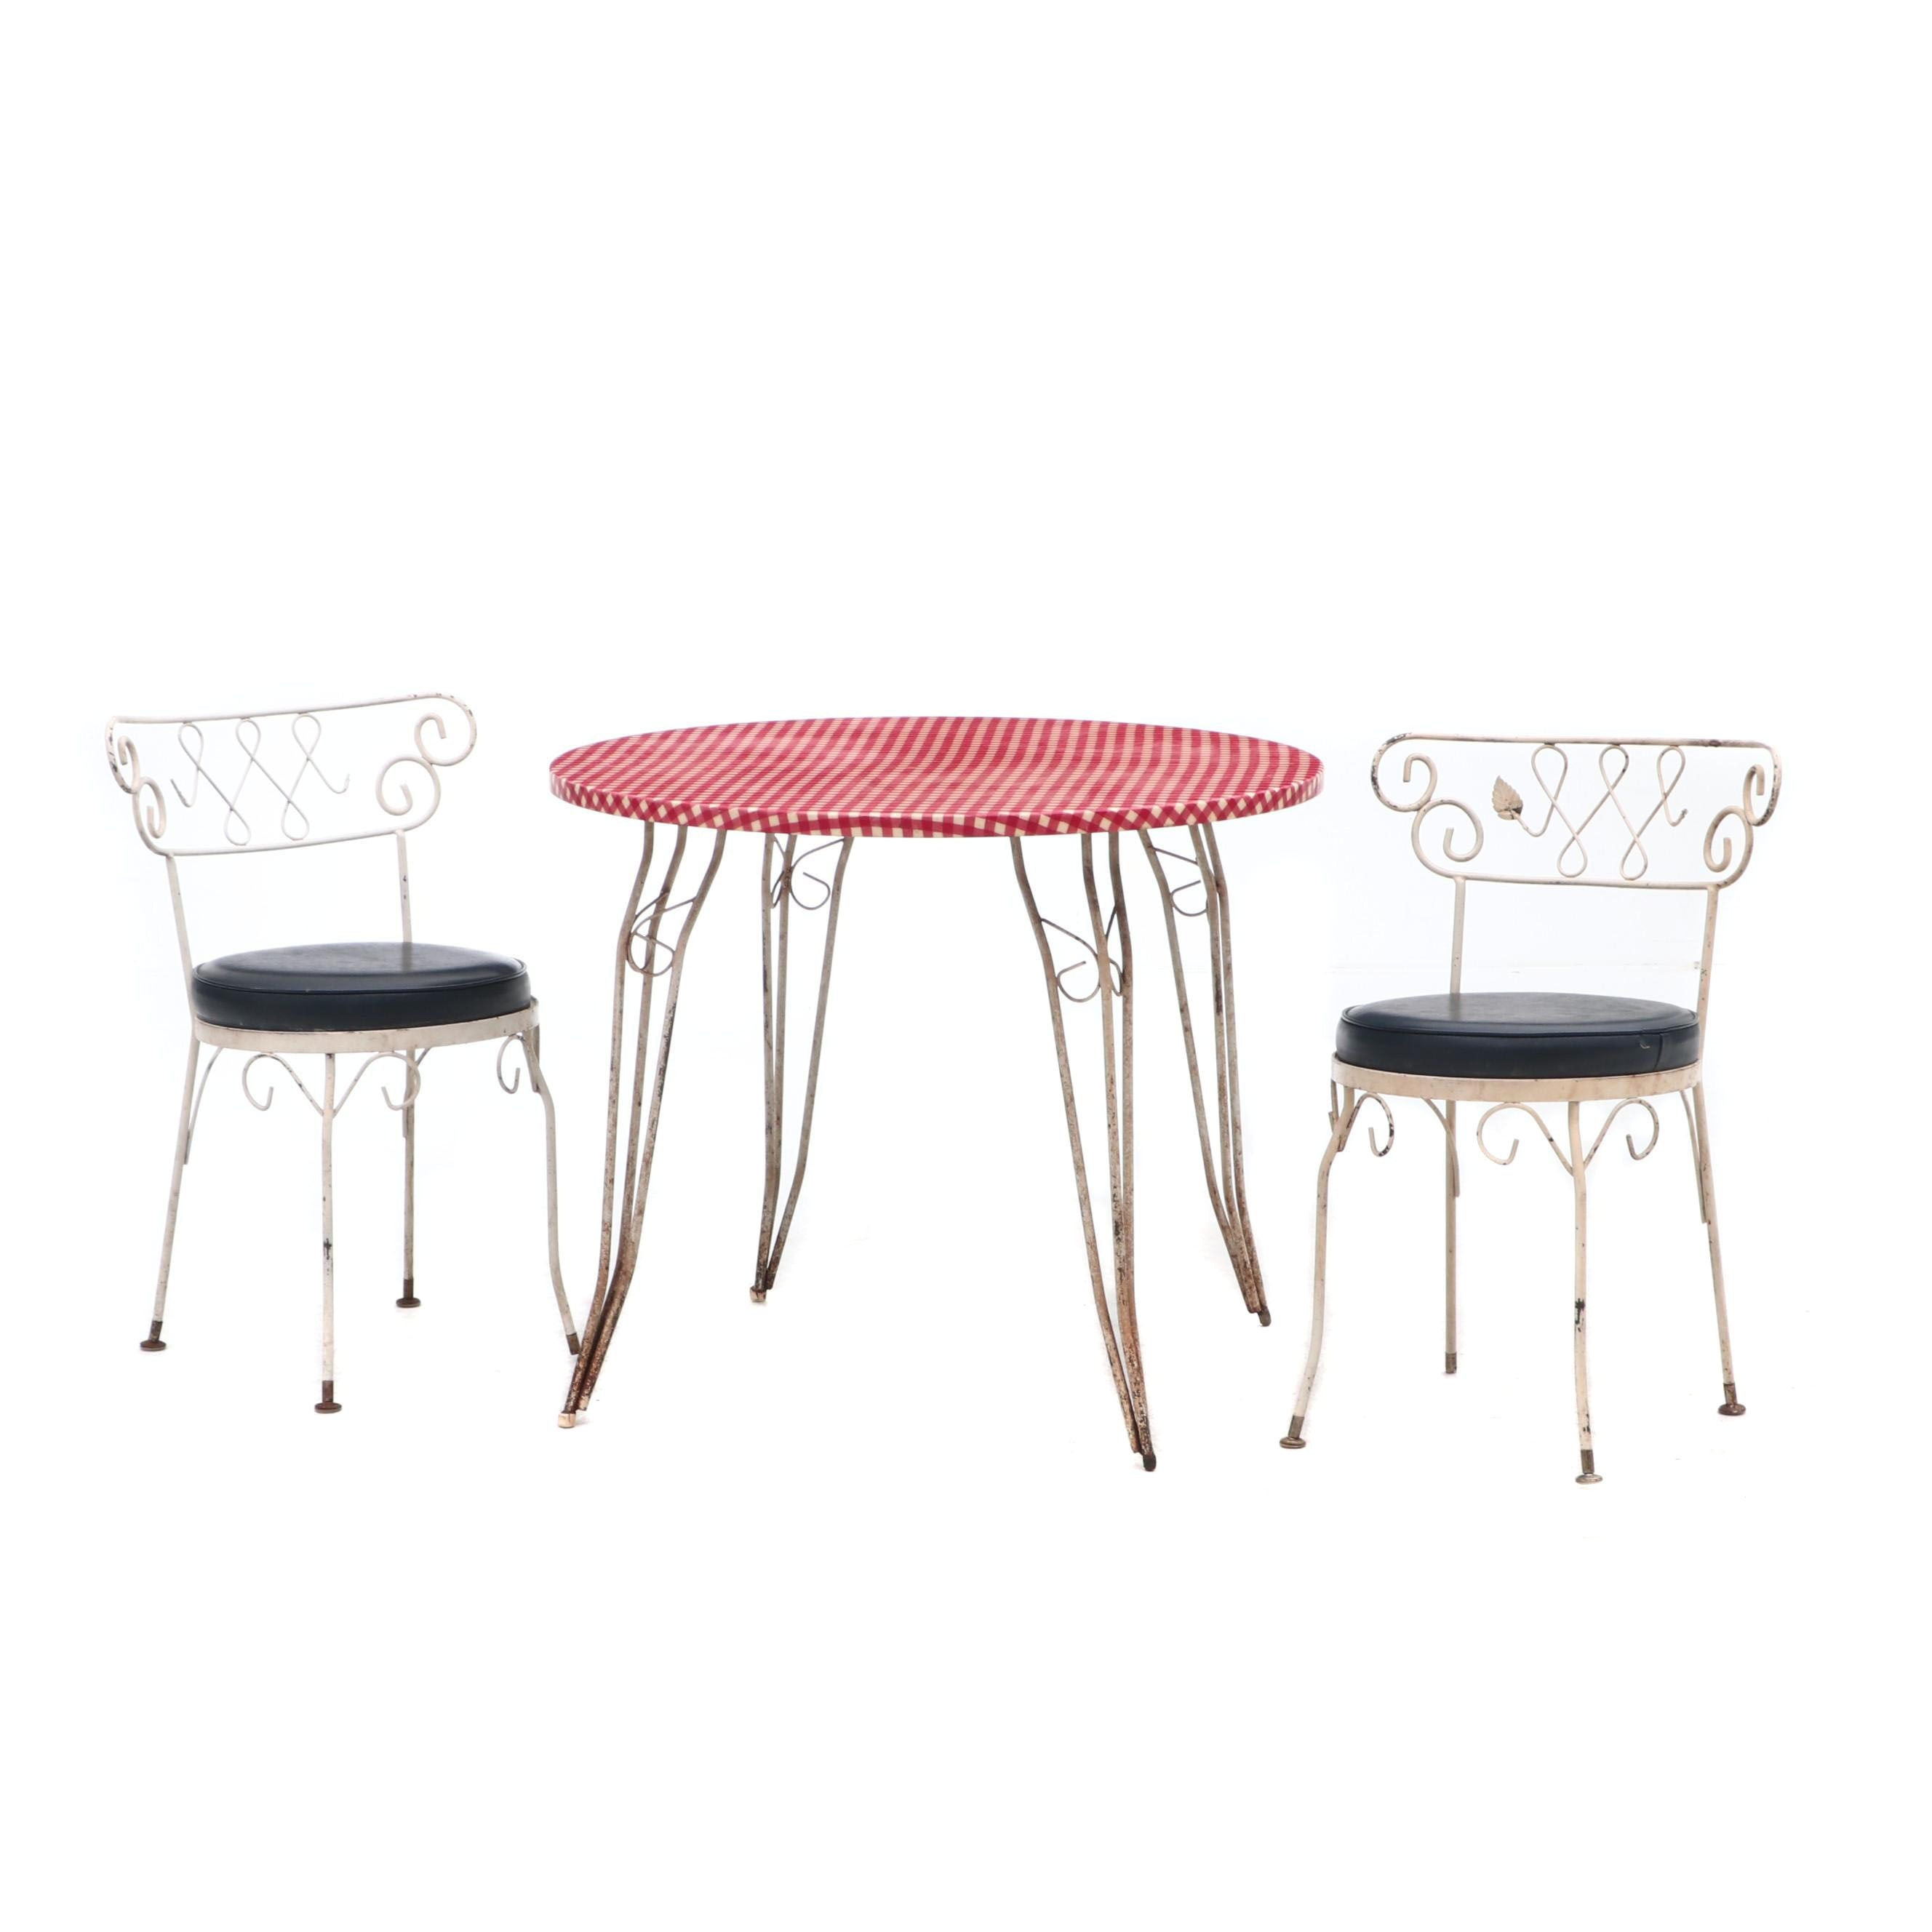 Wrought Iron Dinette Table and Bistro Chairs